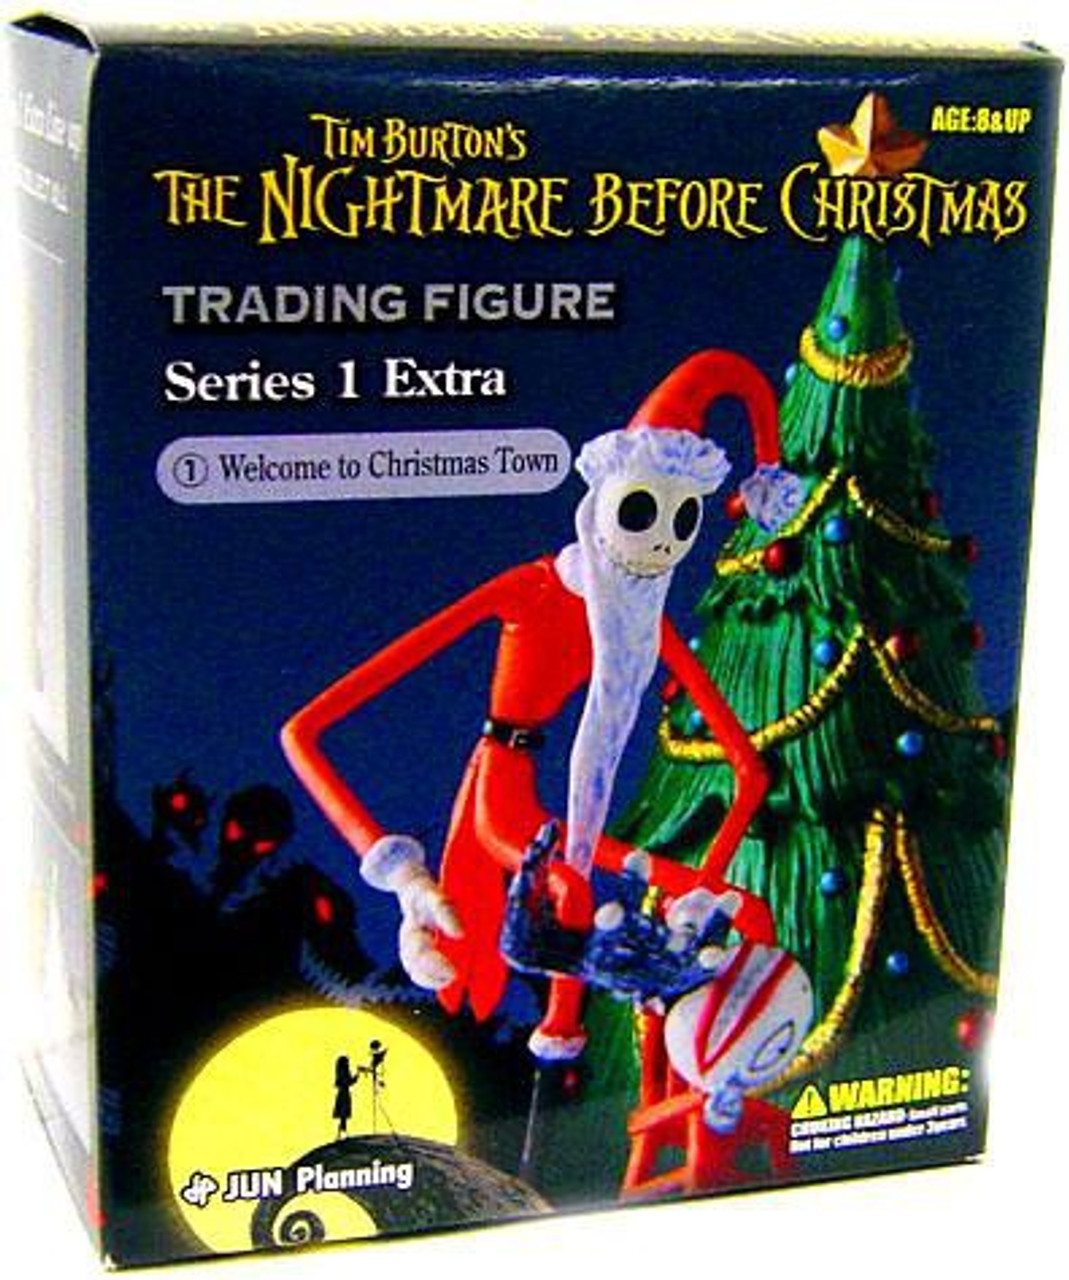 Welcome To Christmas.Nightmare Before Christmas Series 1 Extra Welcome To Christmas Town Trading Figure 1